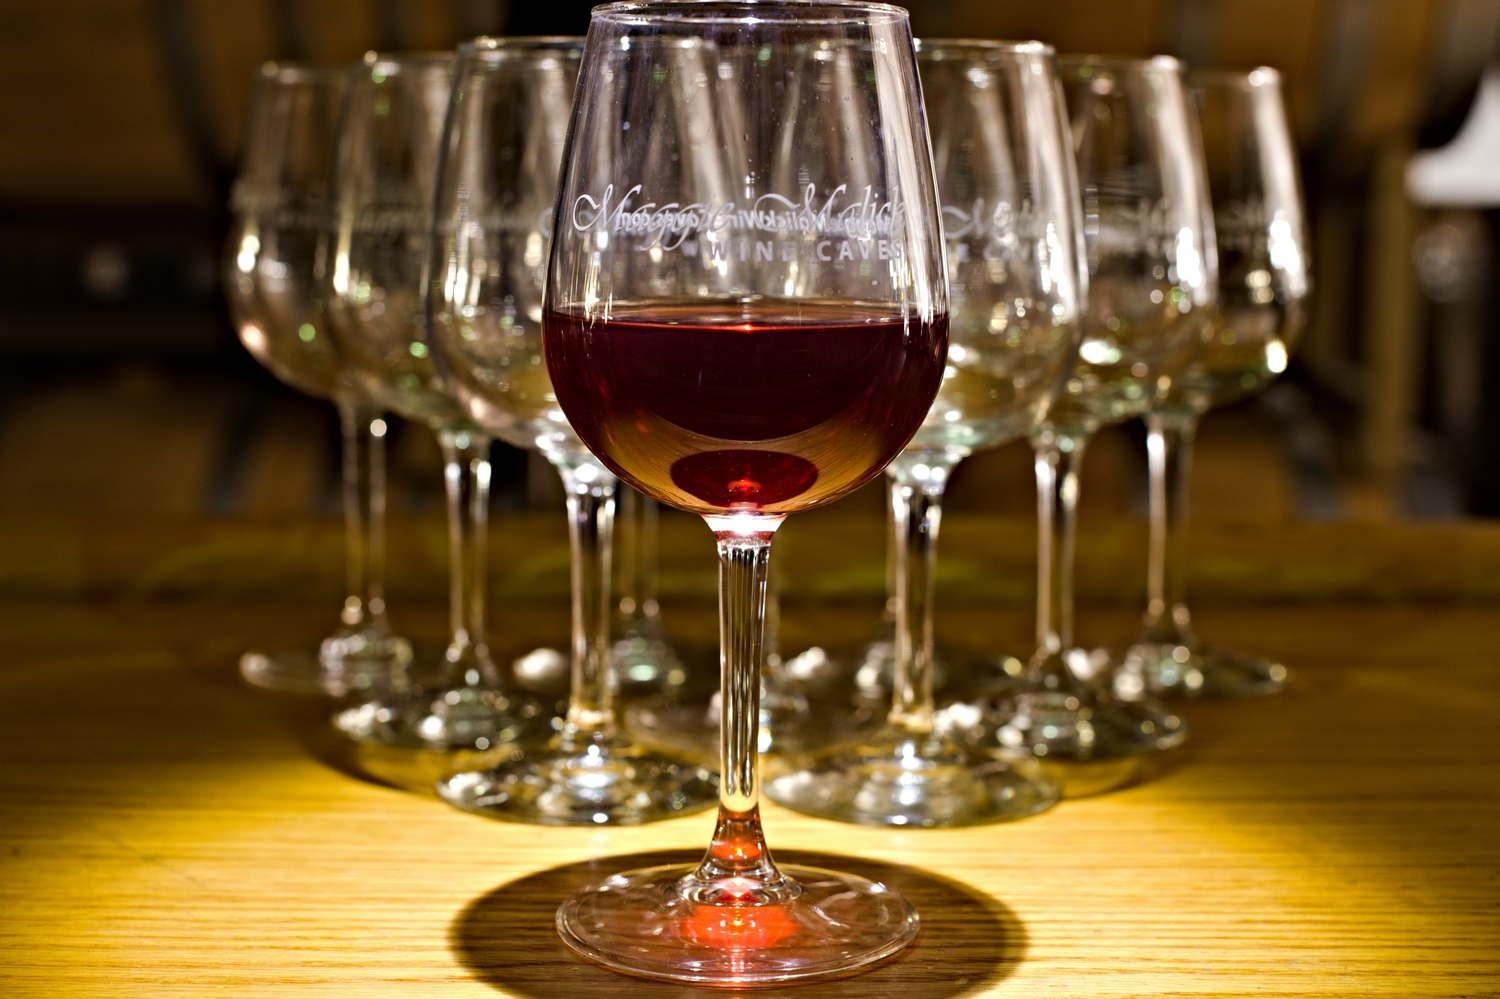 Artistic arrangement of glasses at the bar at Maggie Malik wine caves featuring red wine